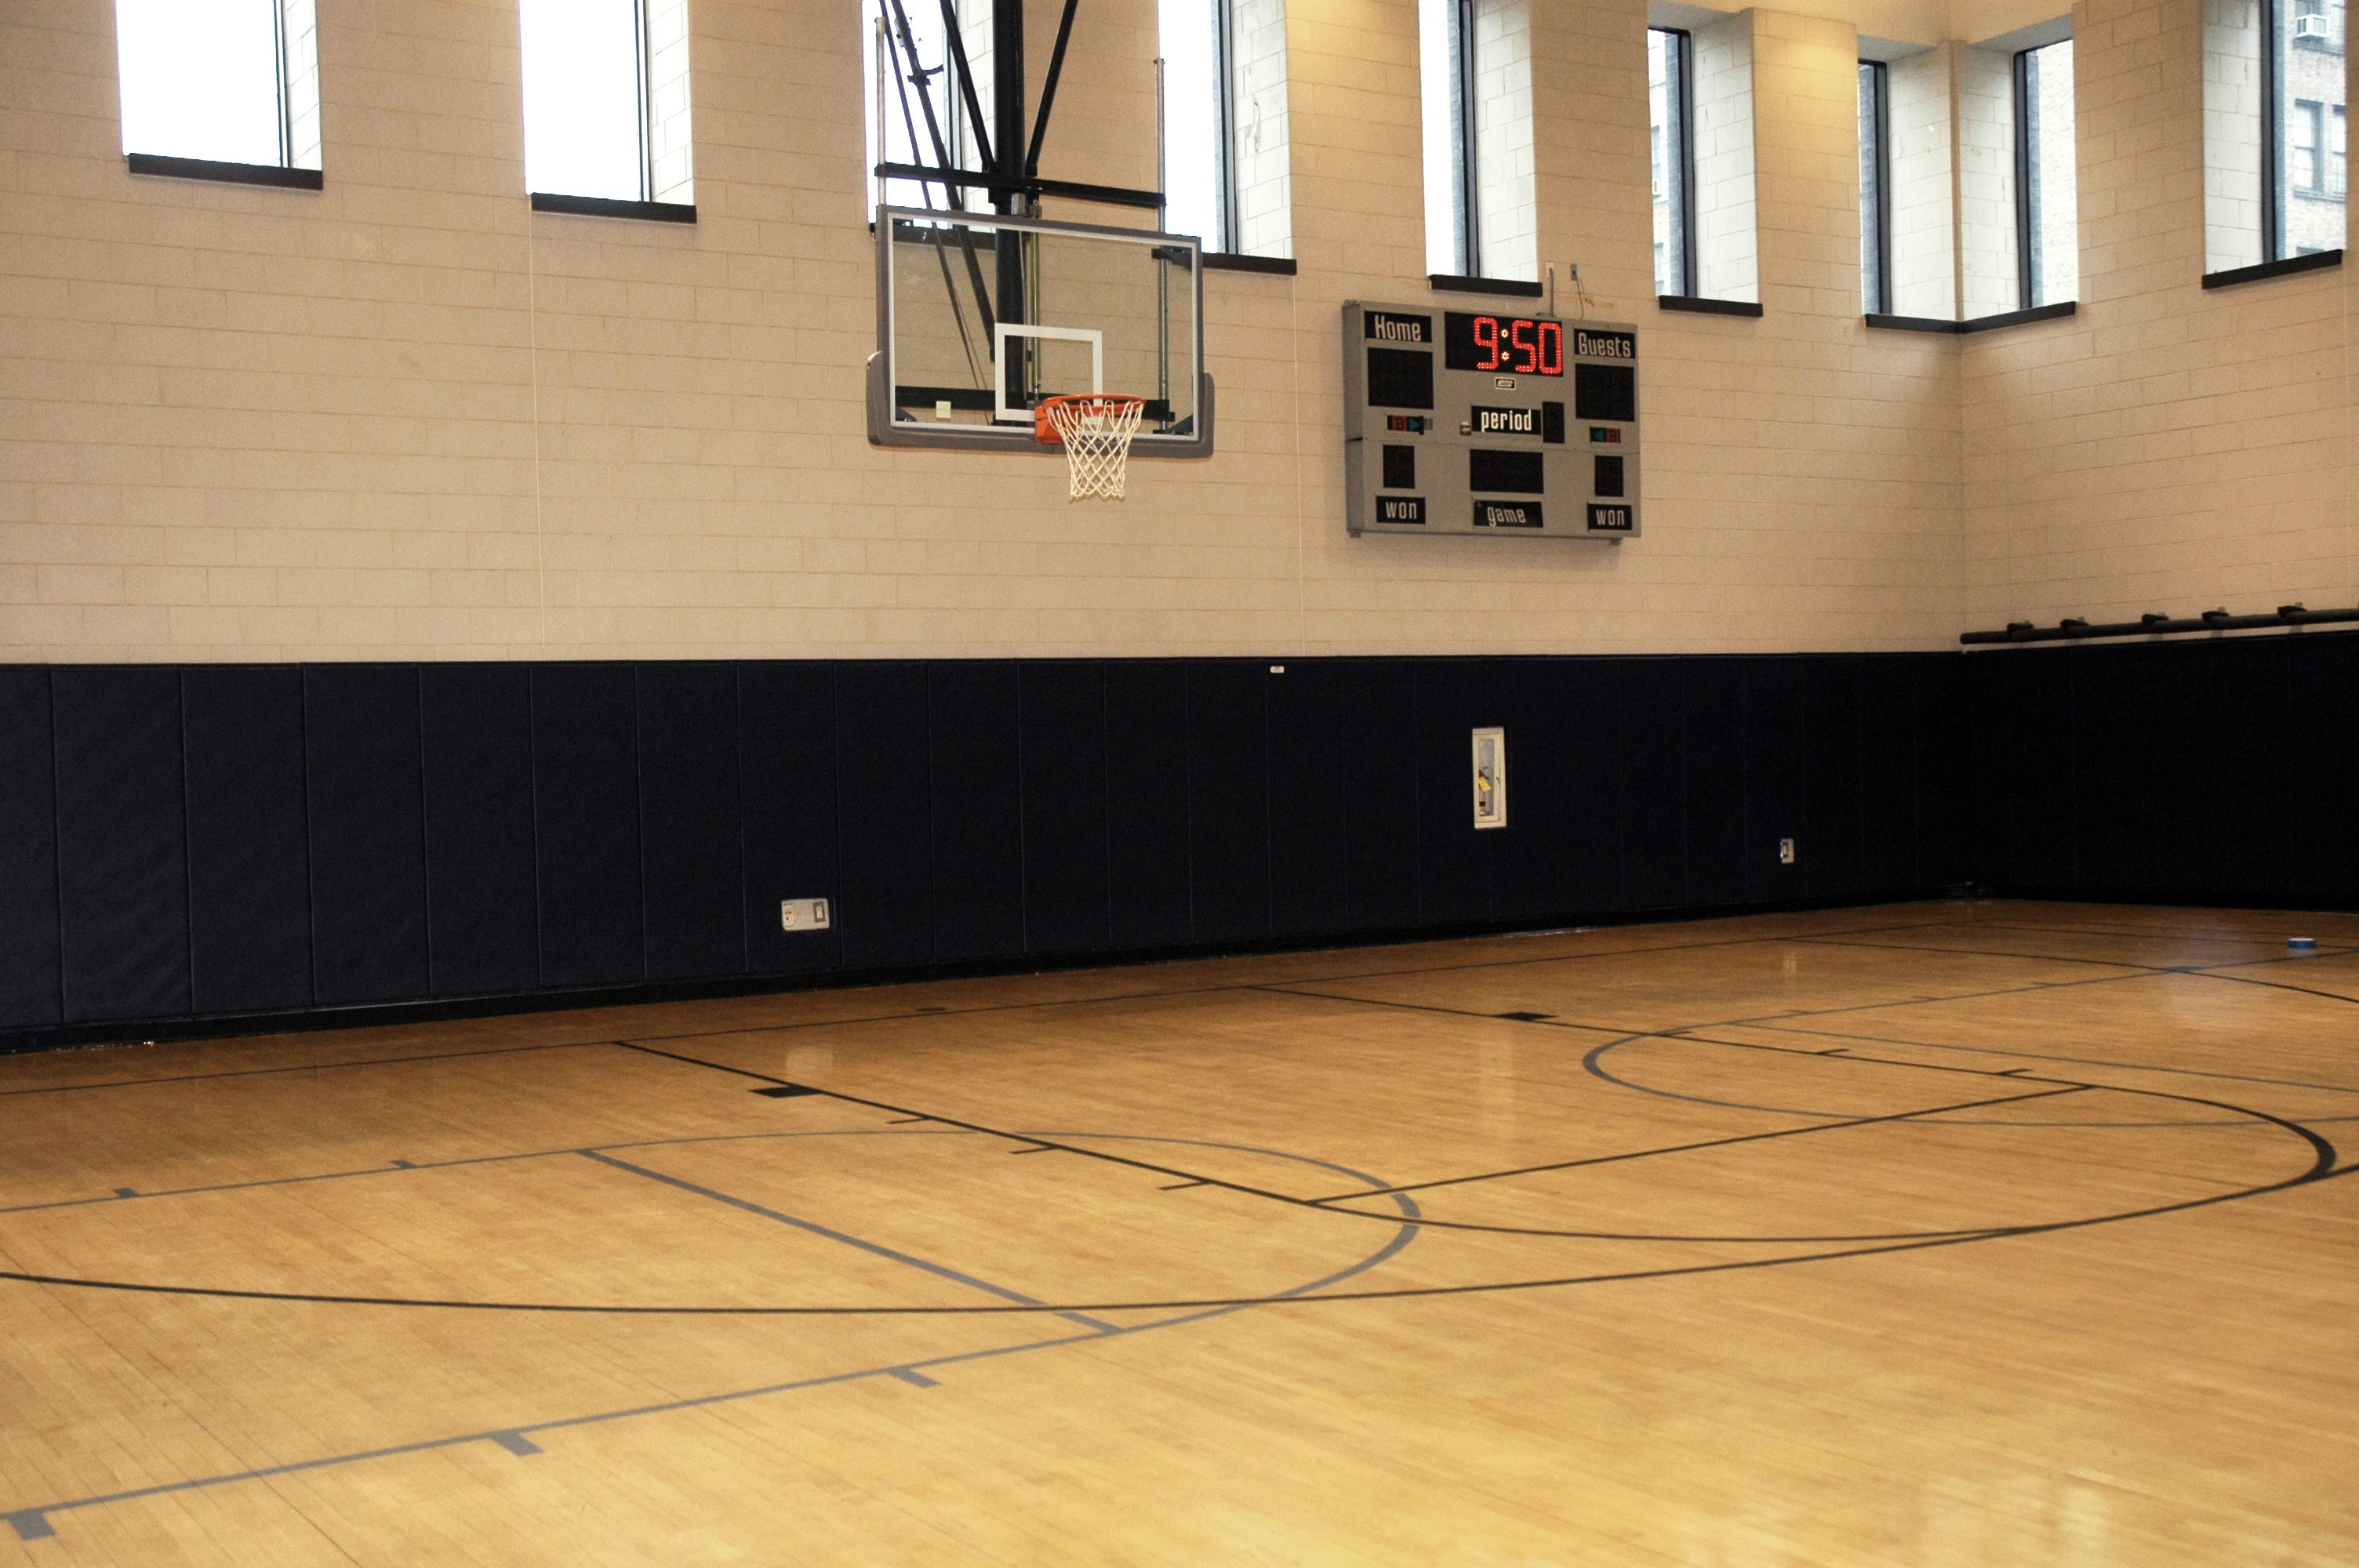 Jcc Manhattan Basketball Court Space Place Court